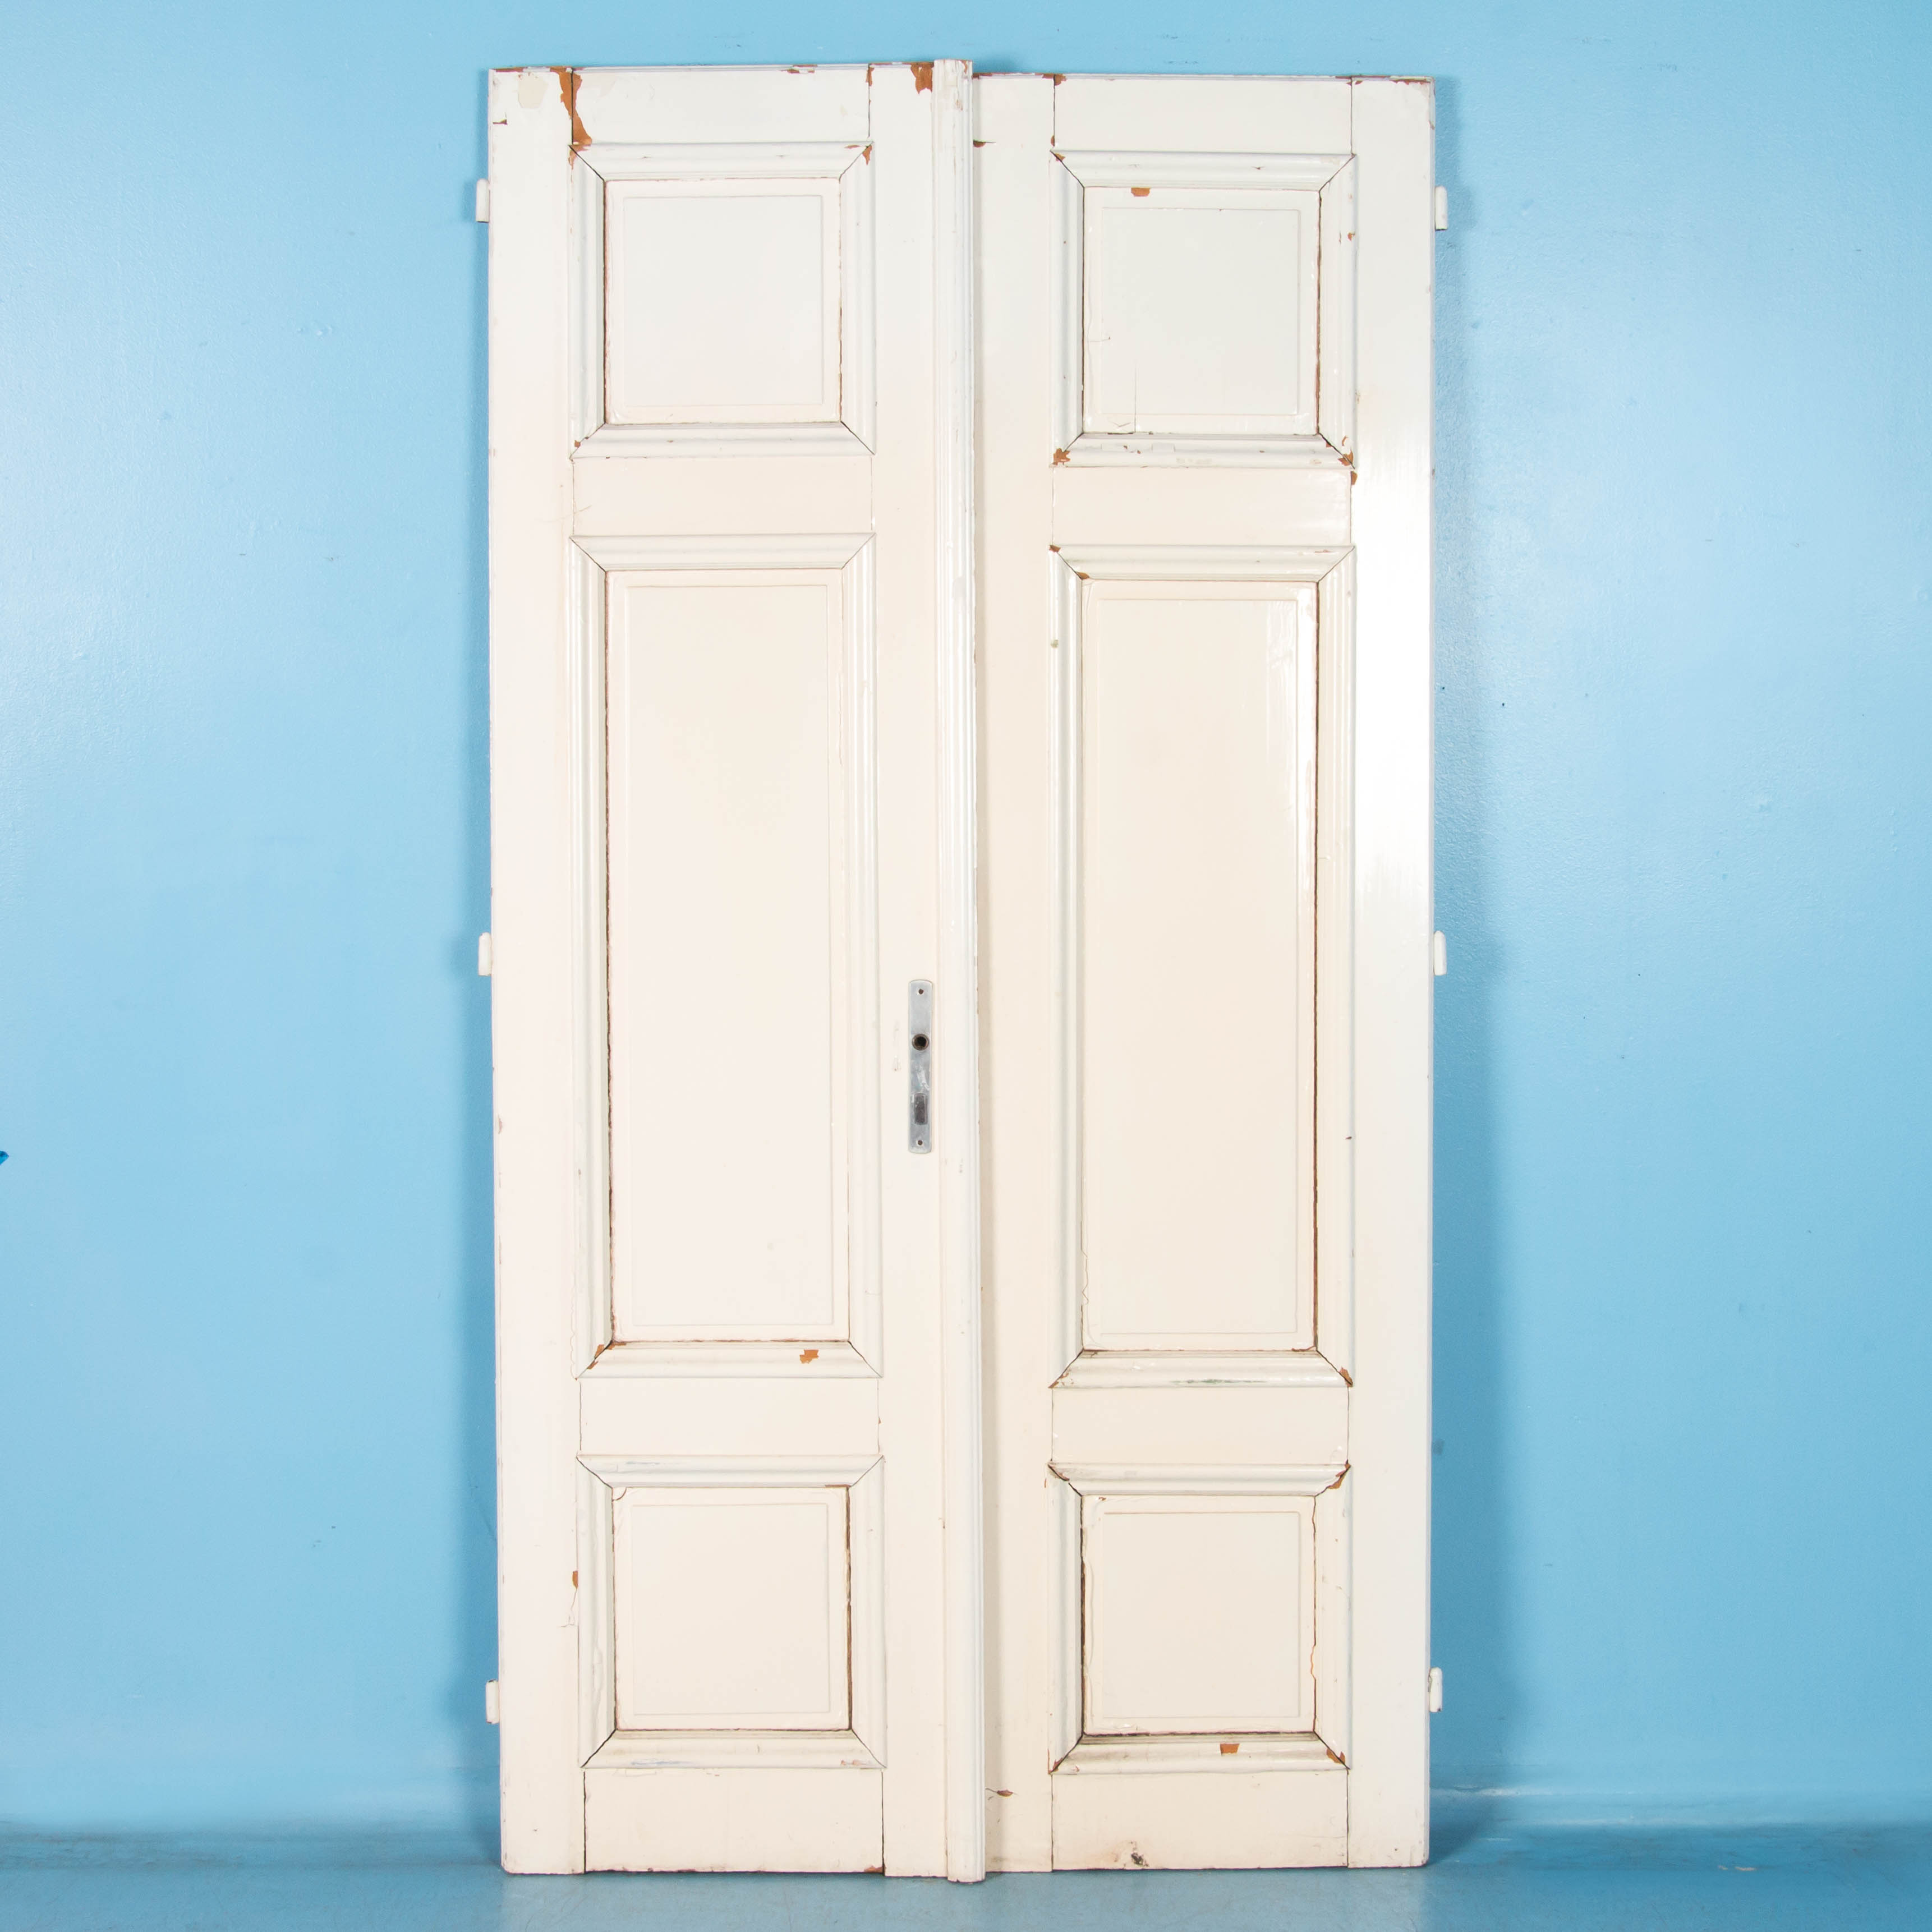 decorating pictures doors on patio tulum maximize large your accordion interior co smsender accordian residence door homes freshness tall to aida designs impressive